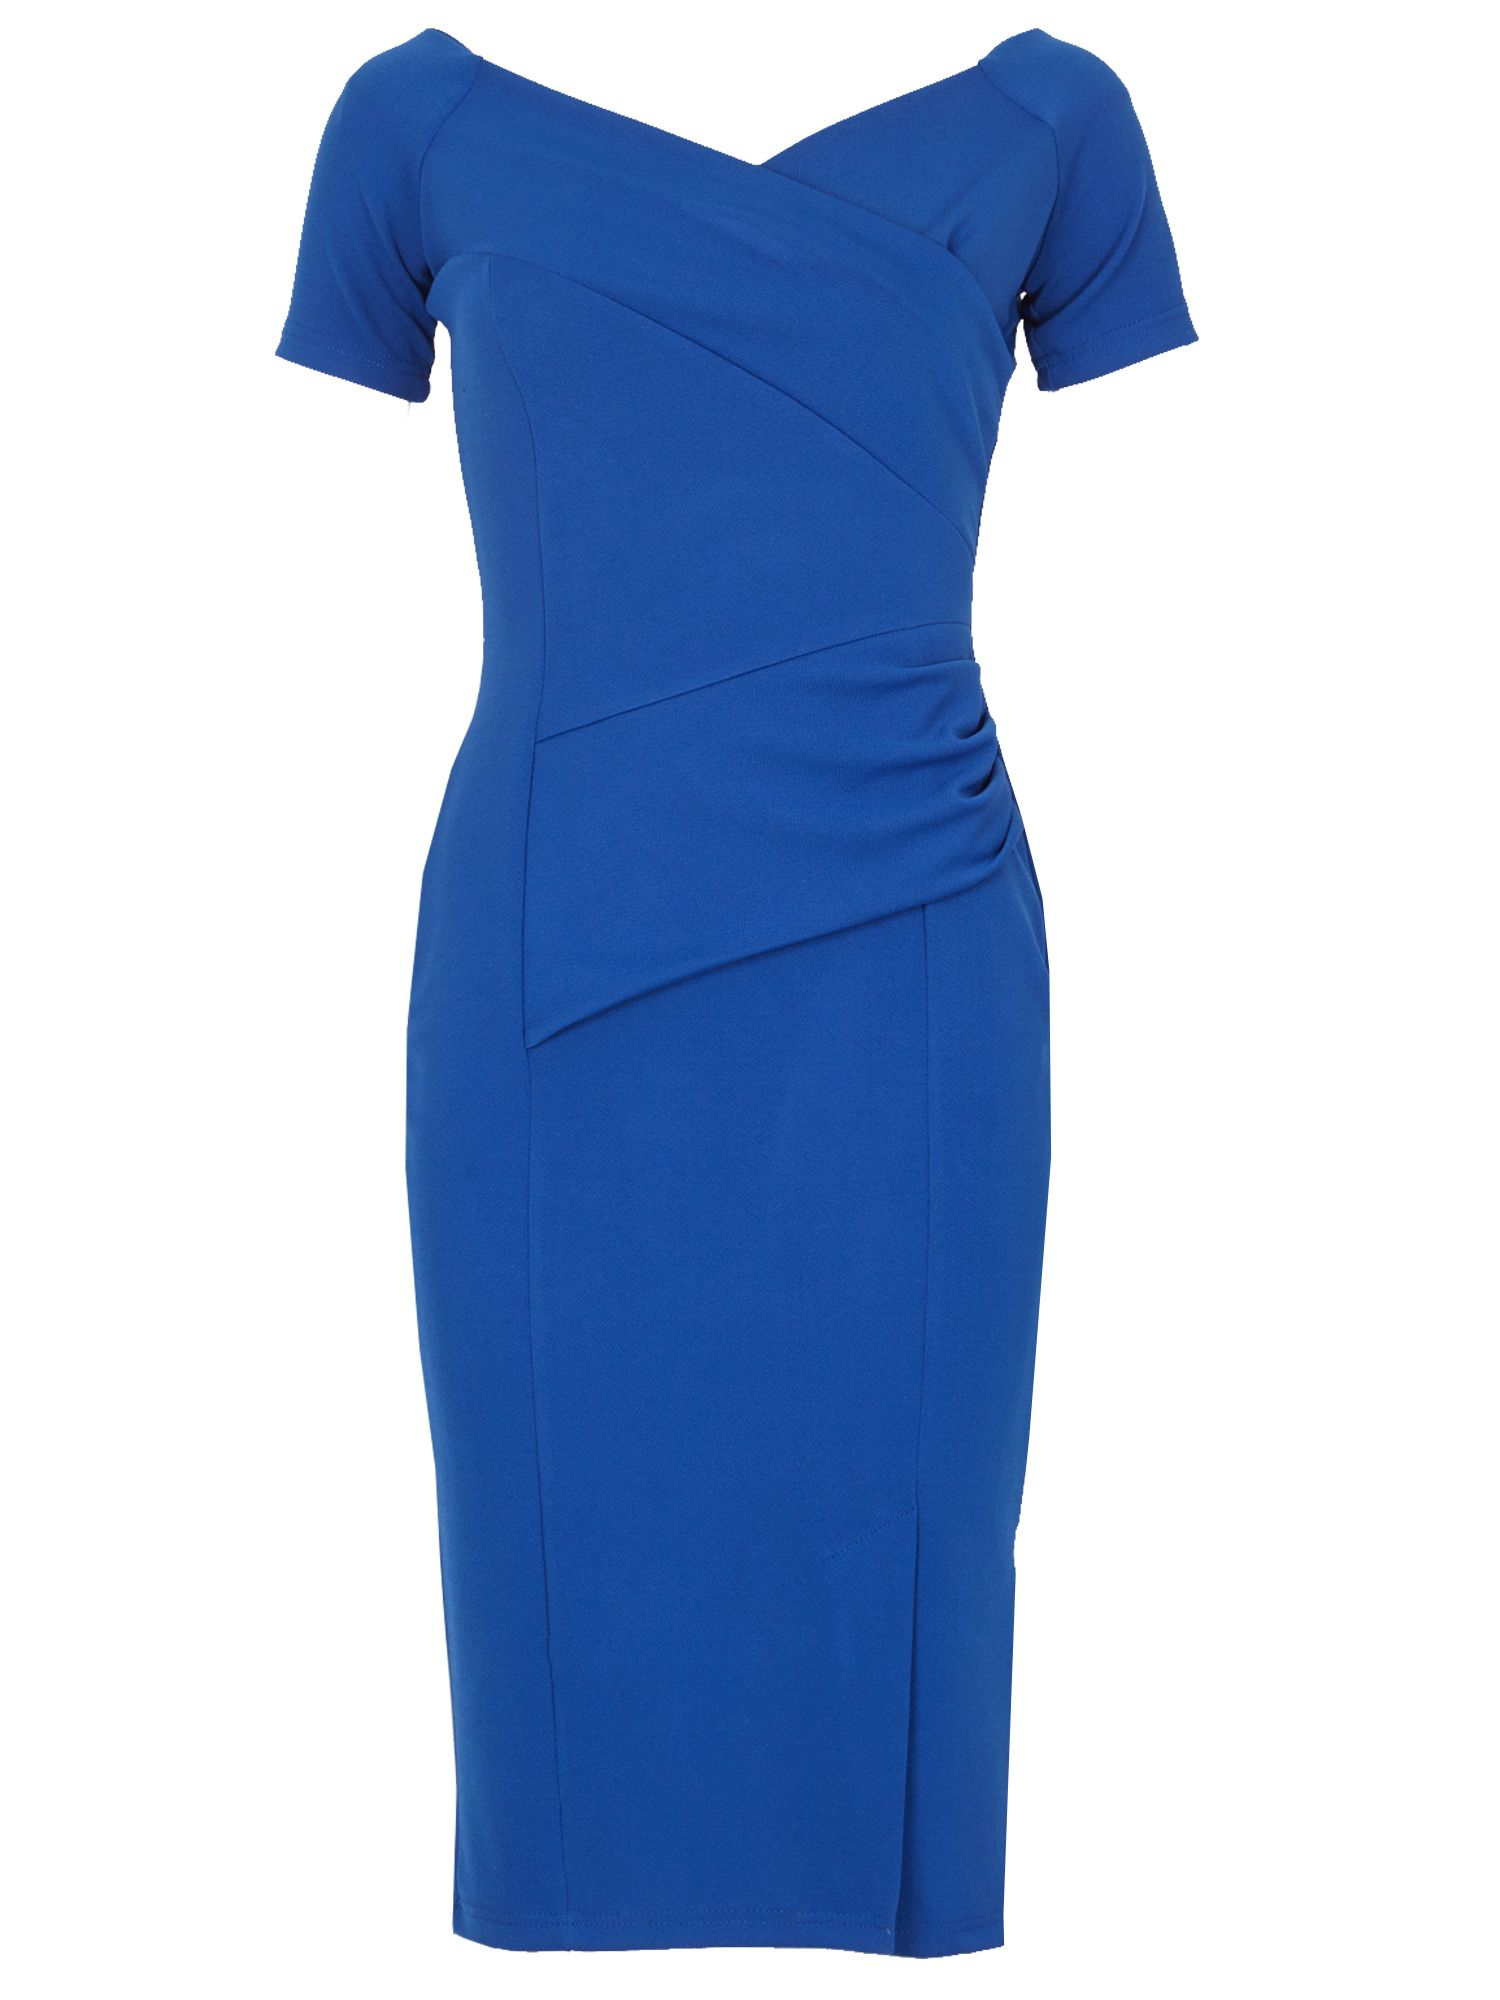 Feverfish Off Shoulder Barbara Dress, Blue